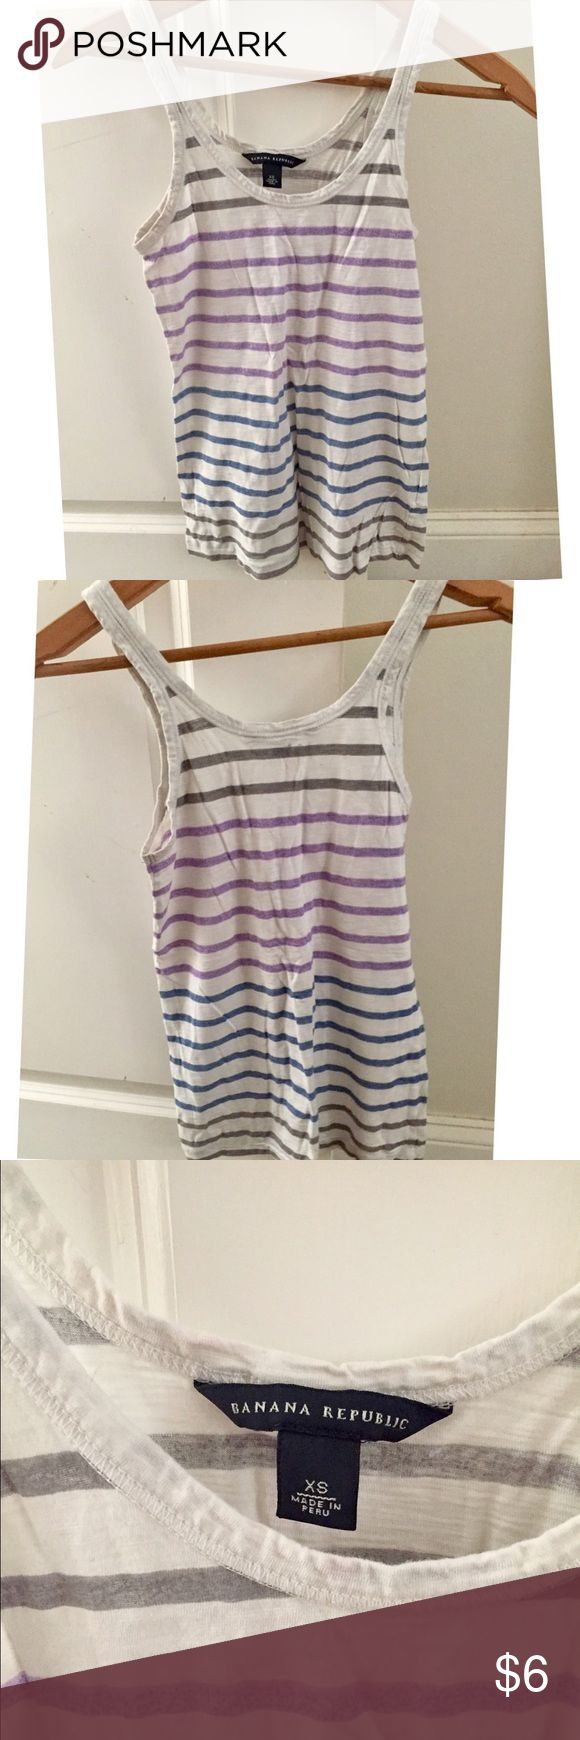 Banana Republic tank top Banana Republic women's striped tank top size XS Banana Republic Tops Tank Tops